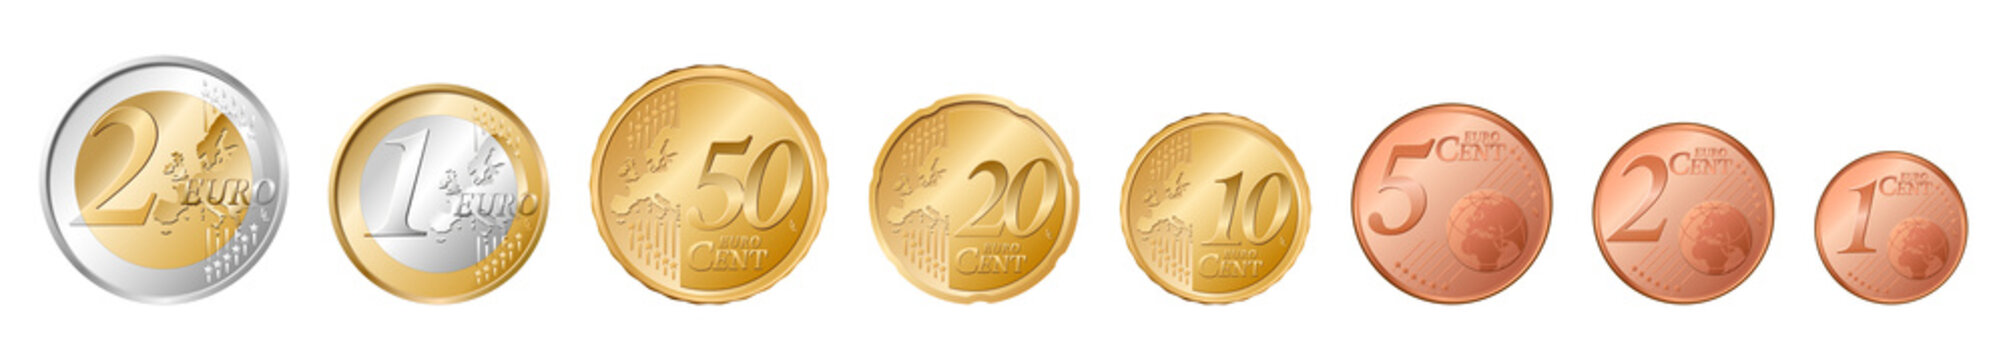 set of all euro coins